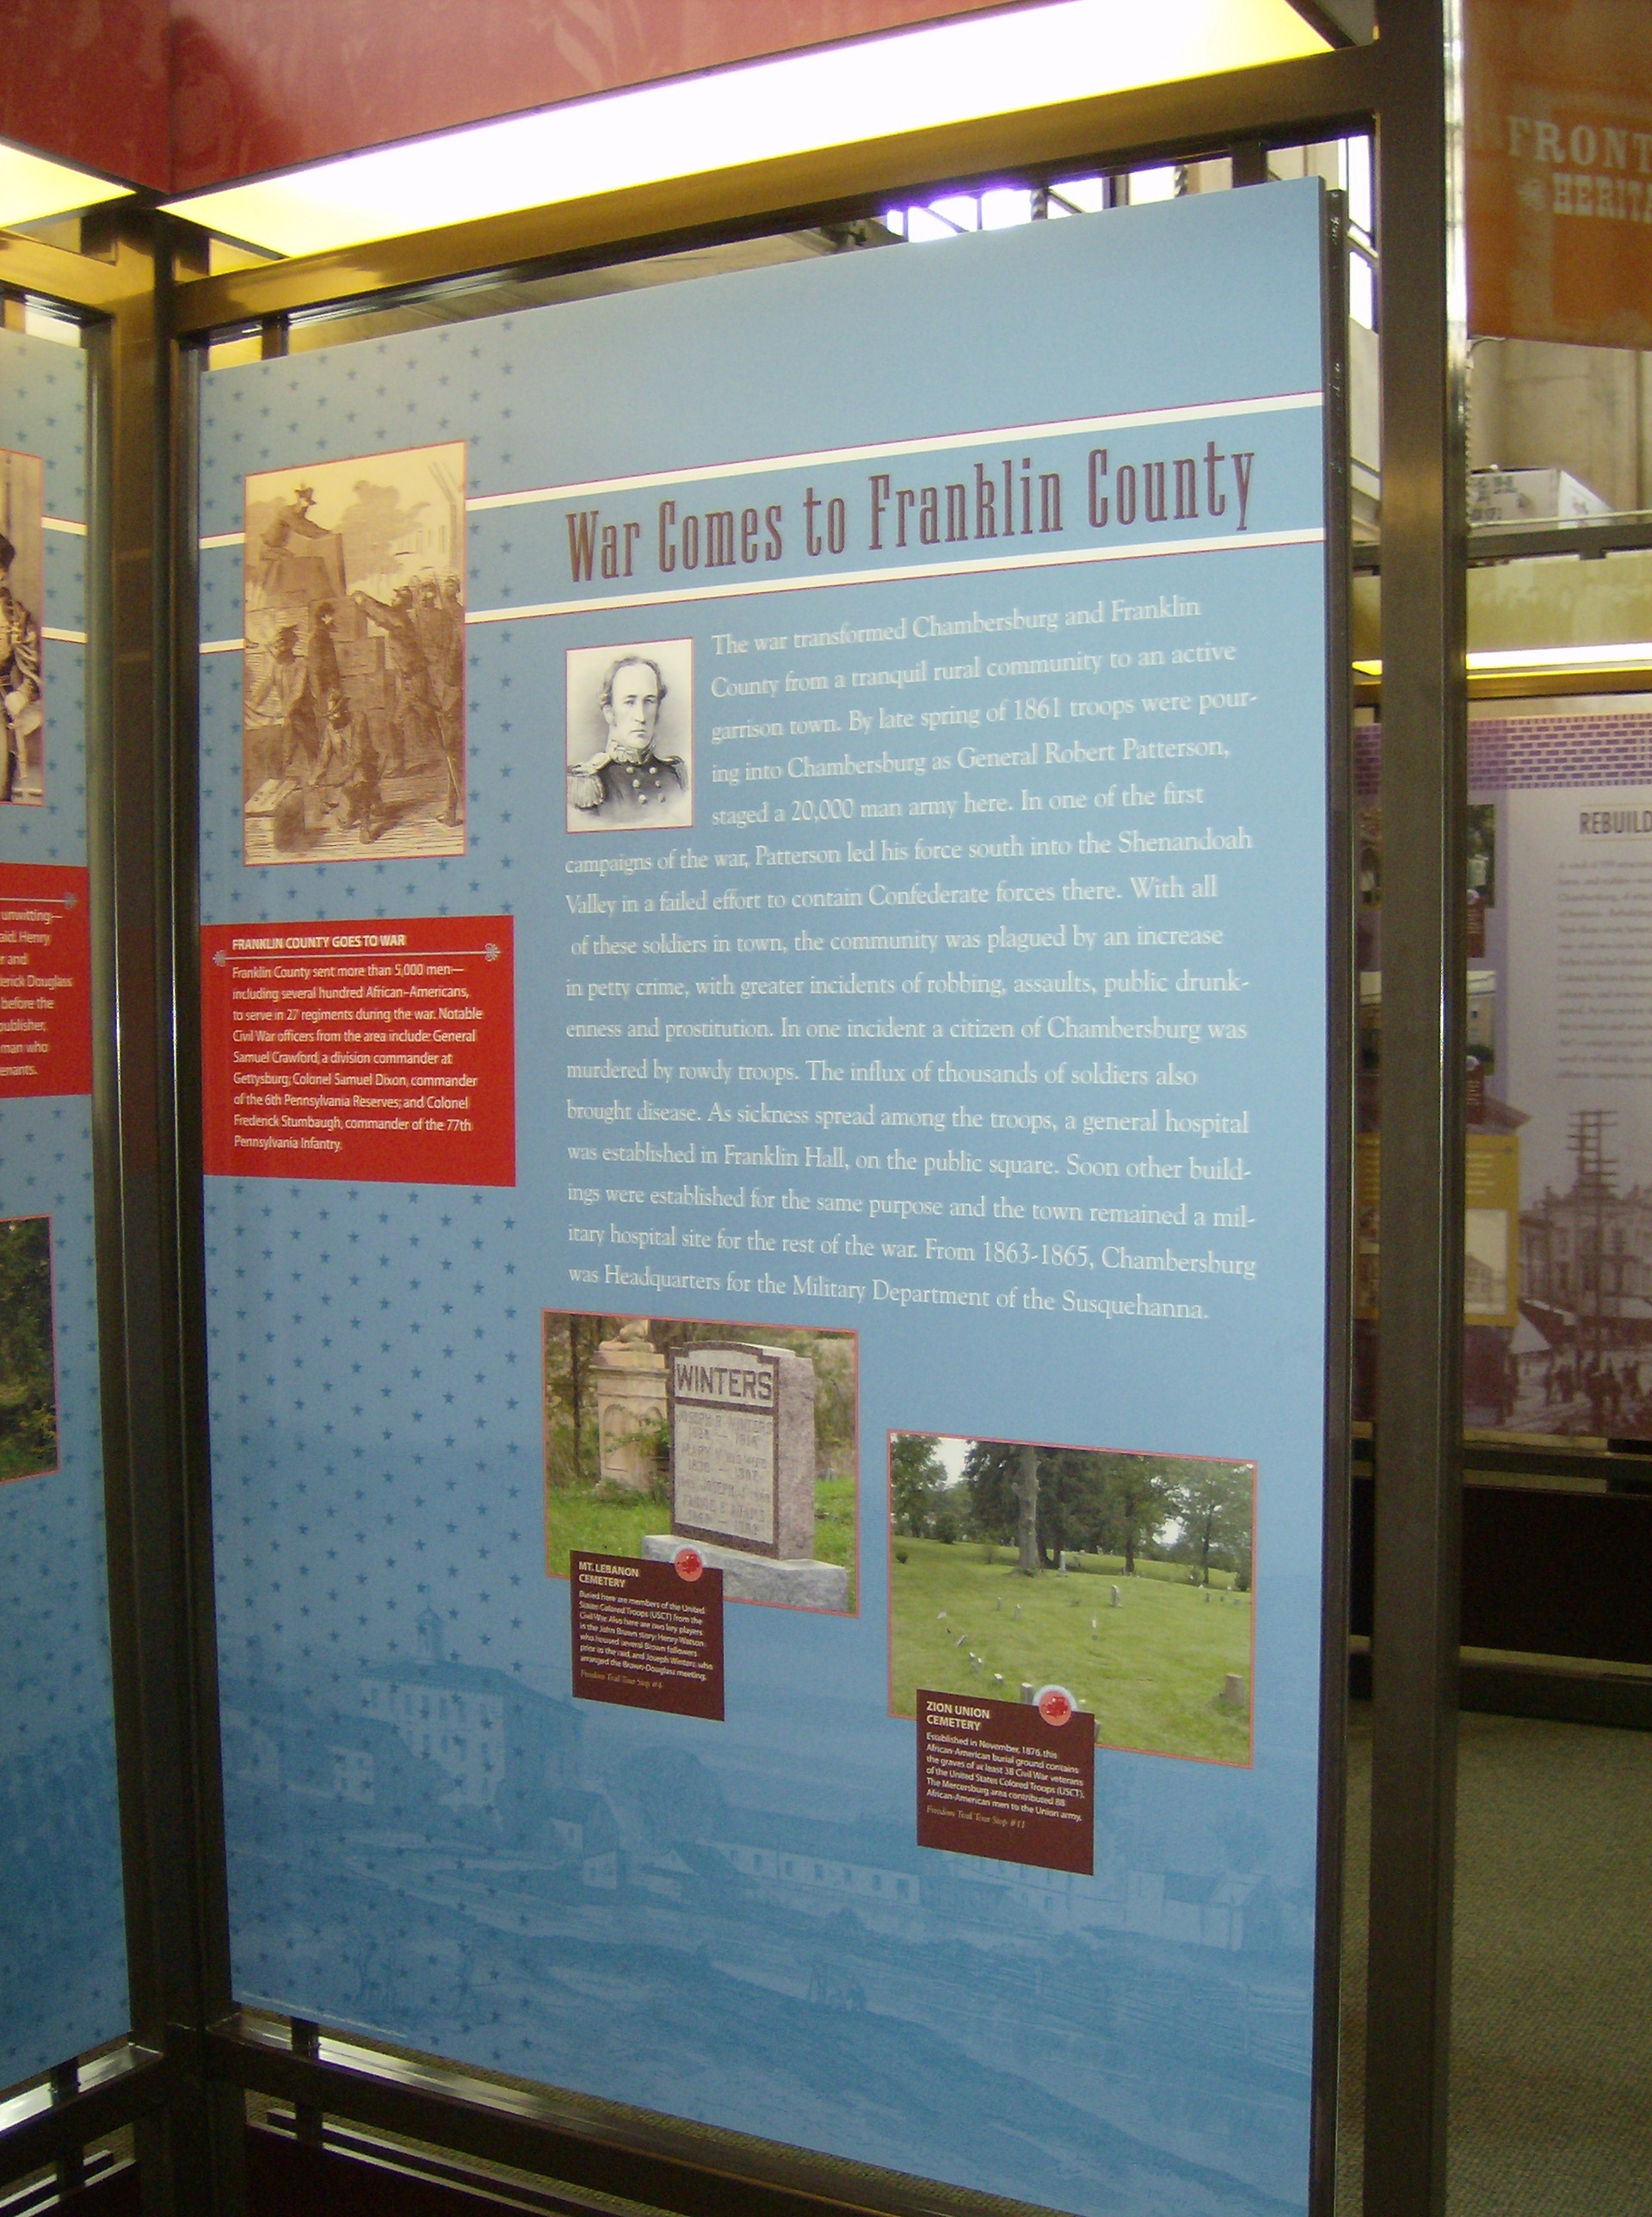 War Comes to Franklin County Interpretive Panel in the nearby Heritage Center